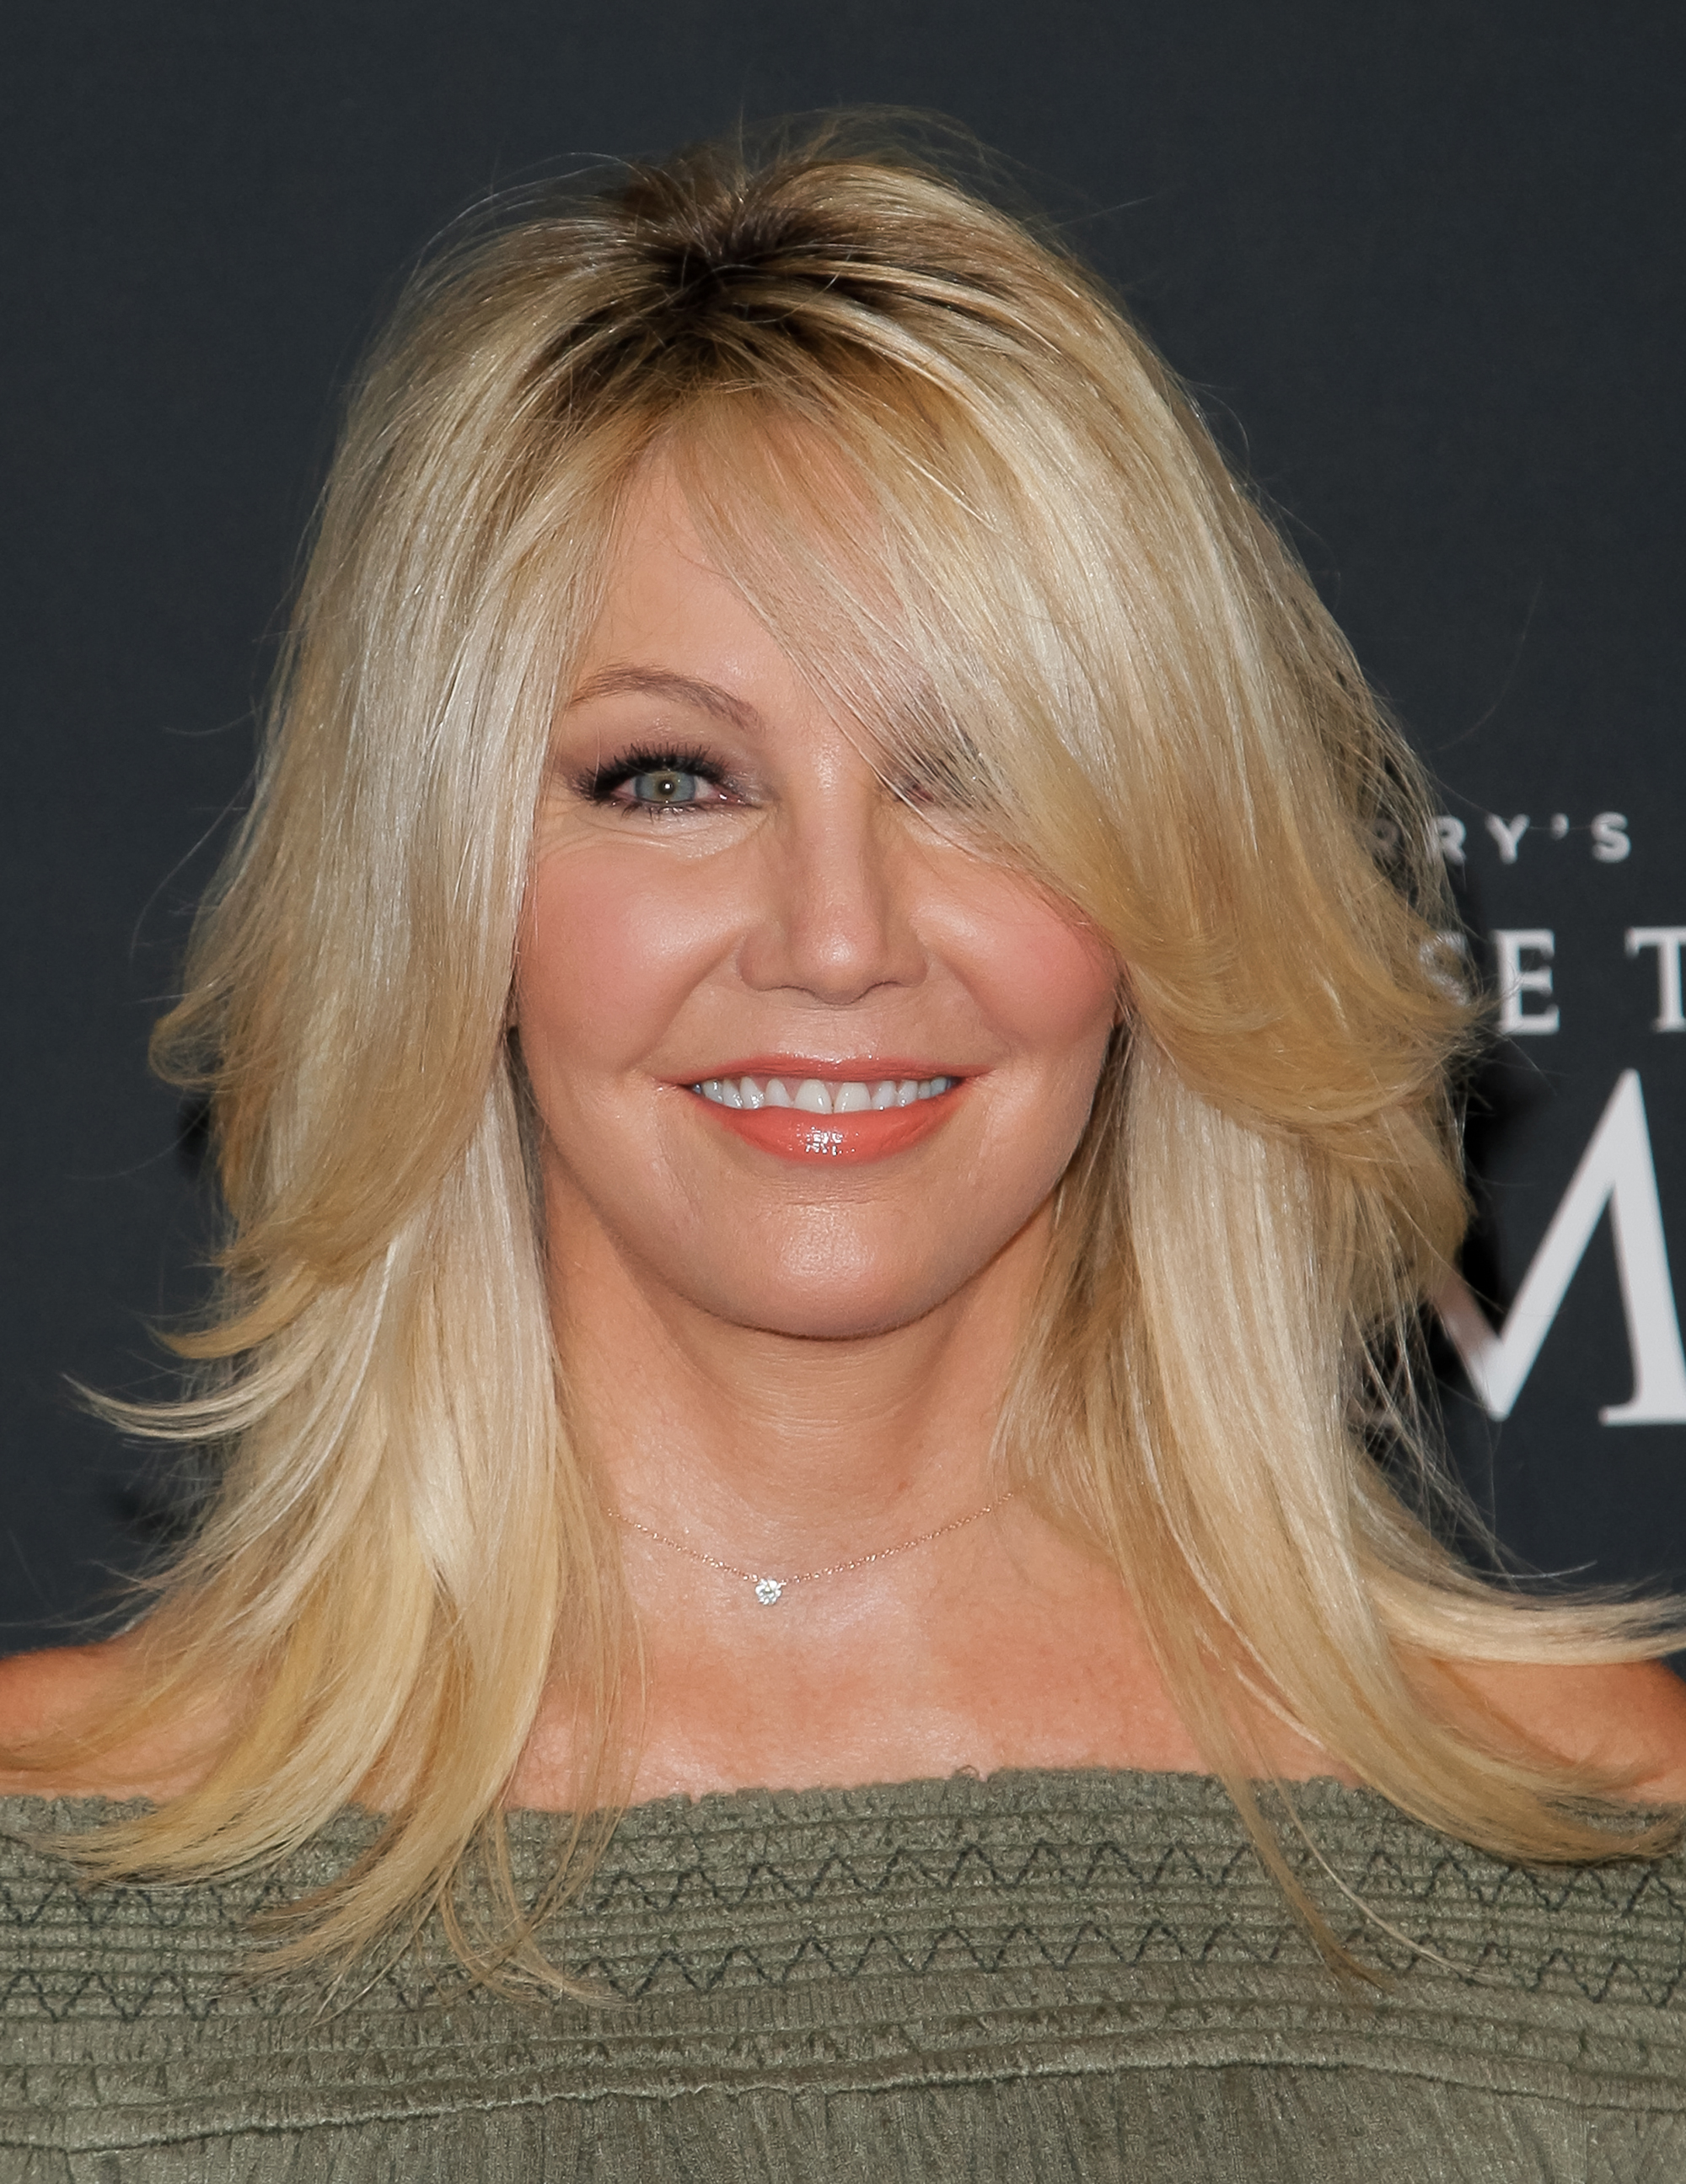 Heather Locklear Hospitalized for Possible Overdose Hours After Leaving Jail